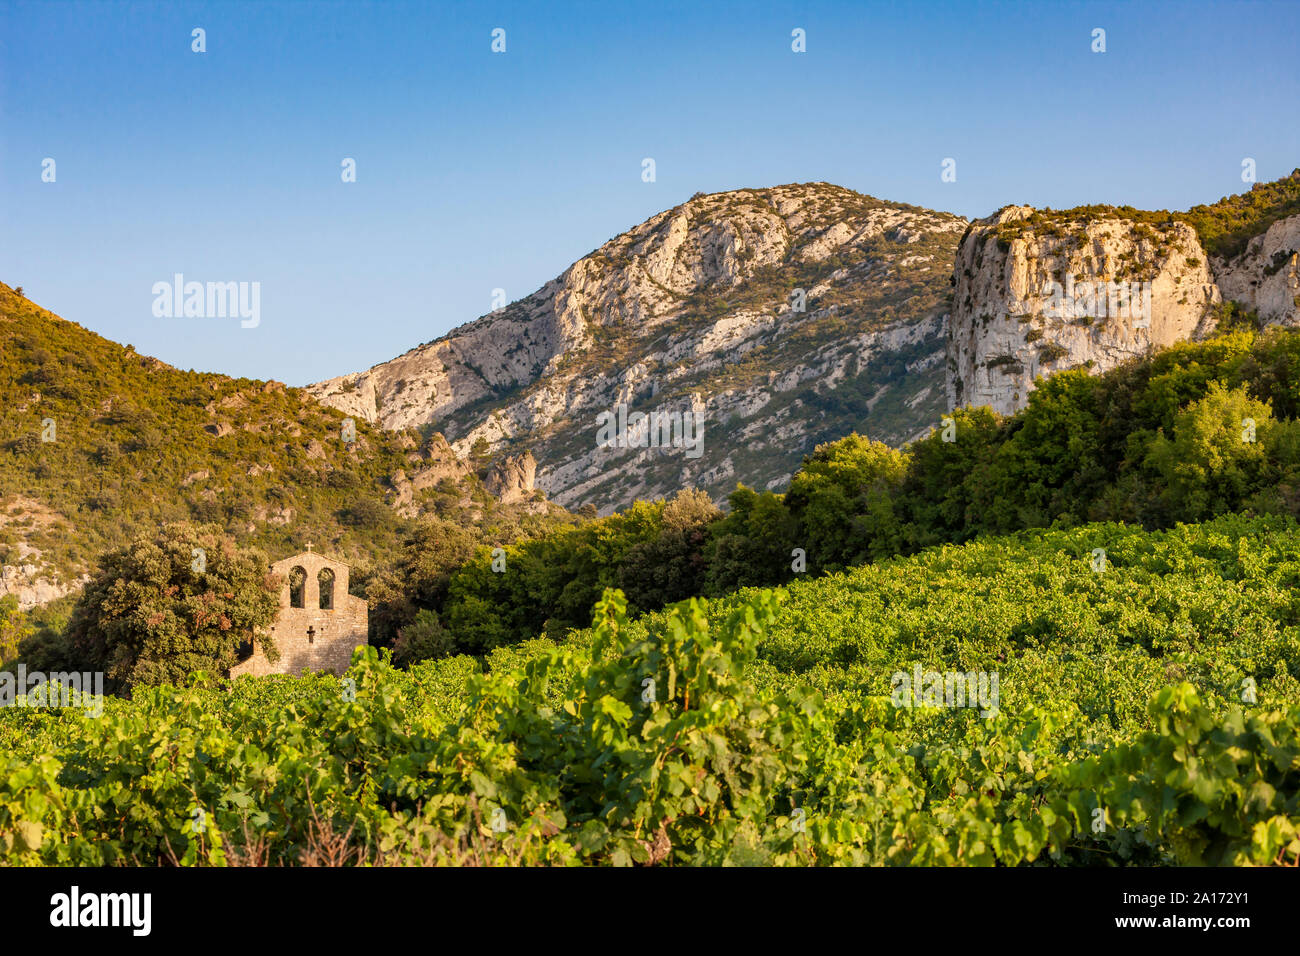 vineyards in the wine region Languedoc-Roussillon, Roussillon, France Stock Photo